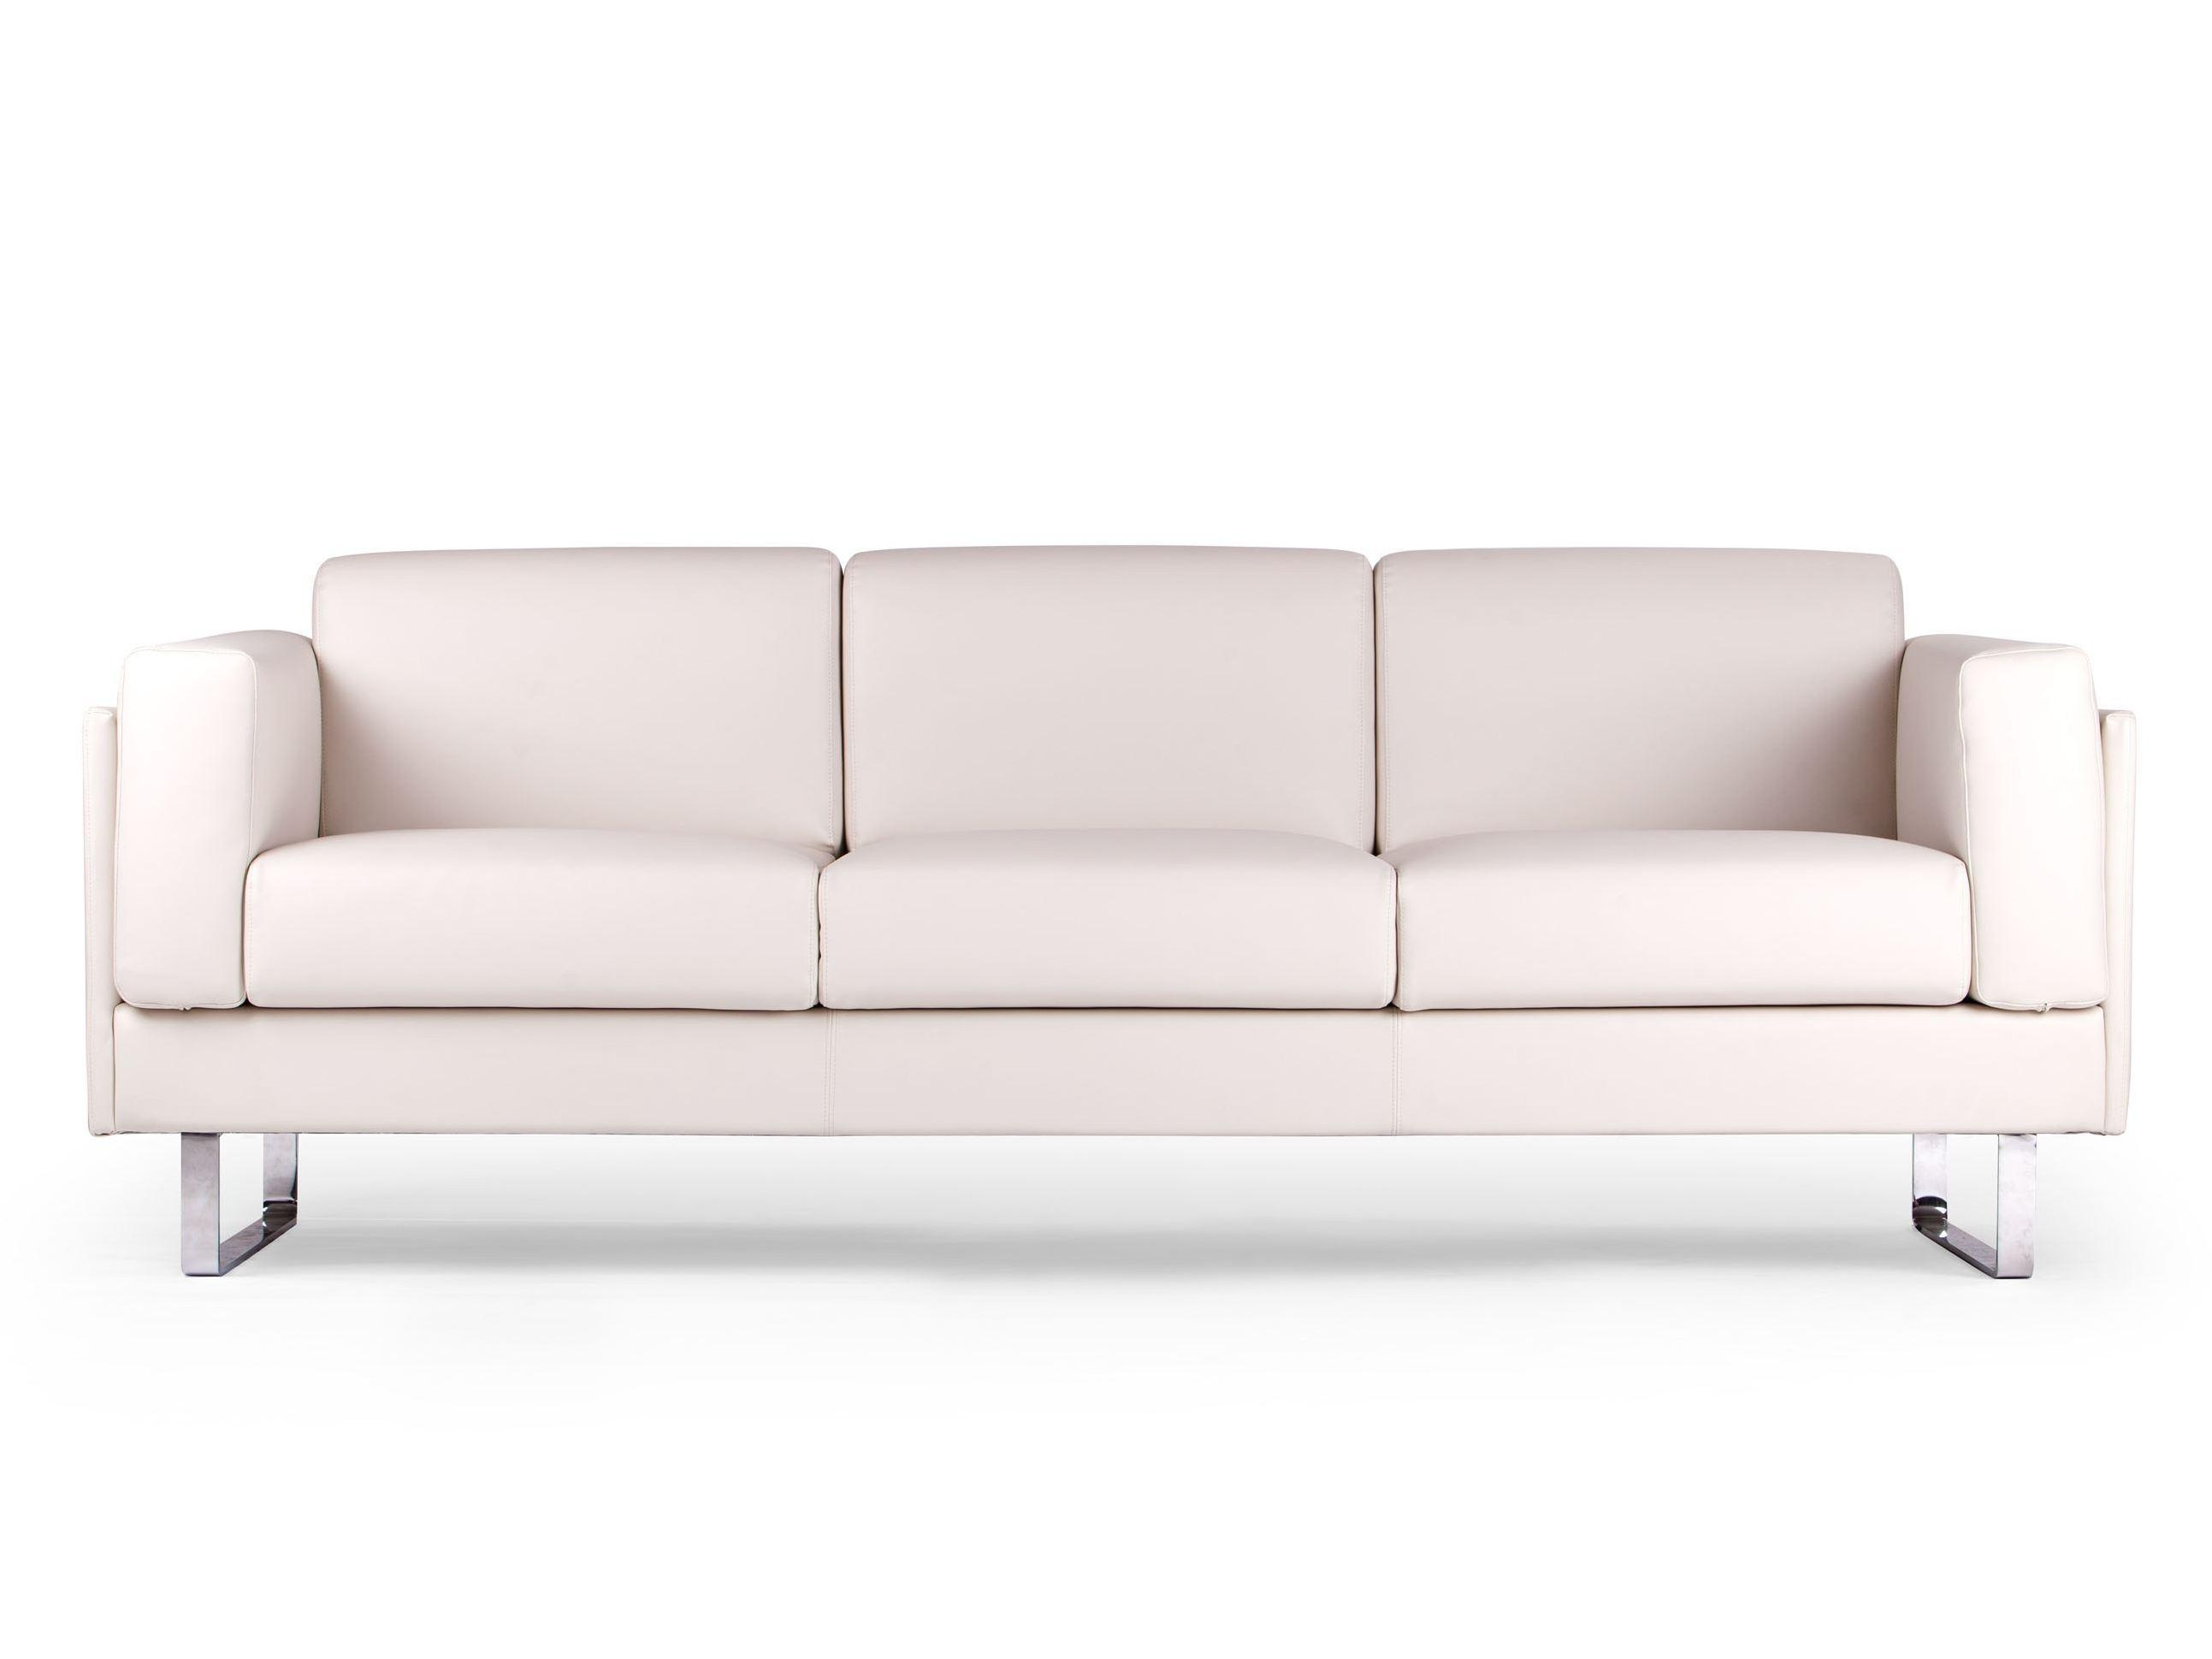 20 best ideas three seater sofas sofa ideas for Sofa 7 seater